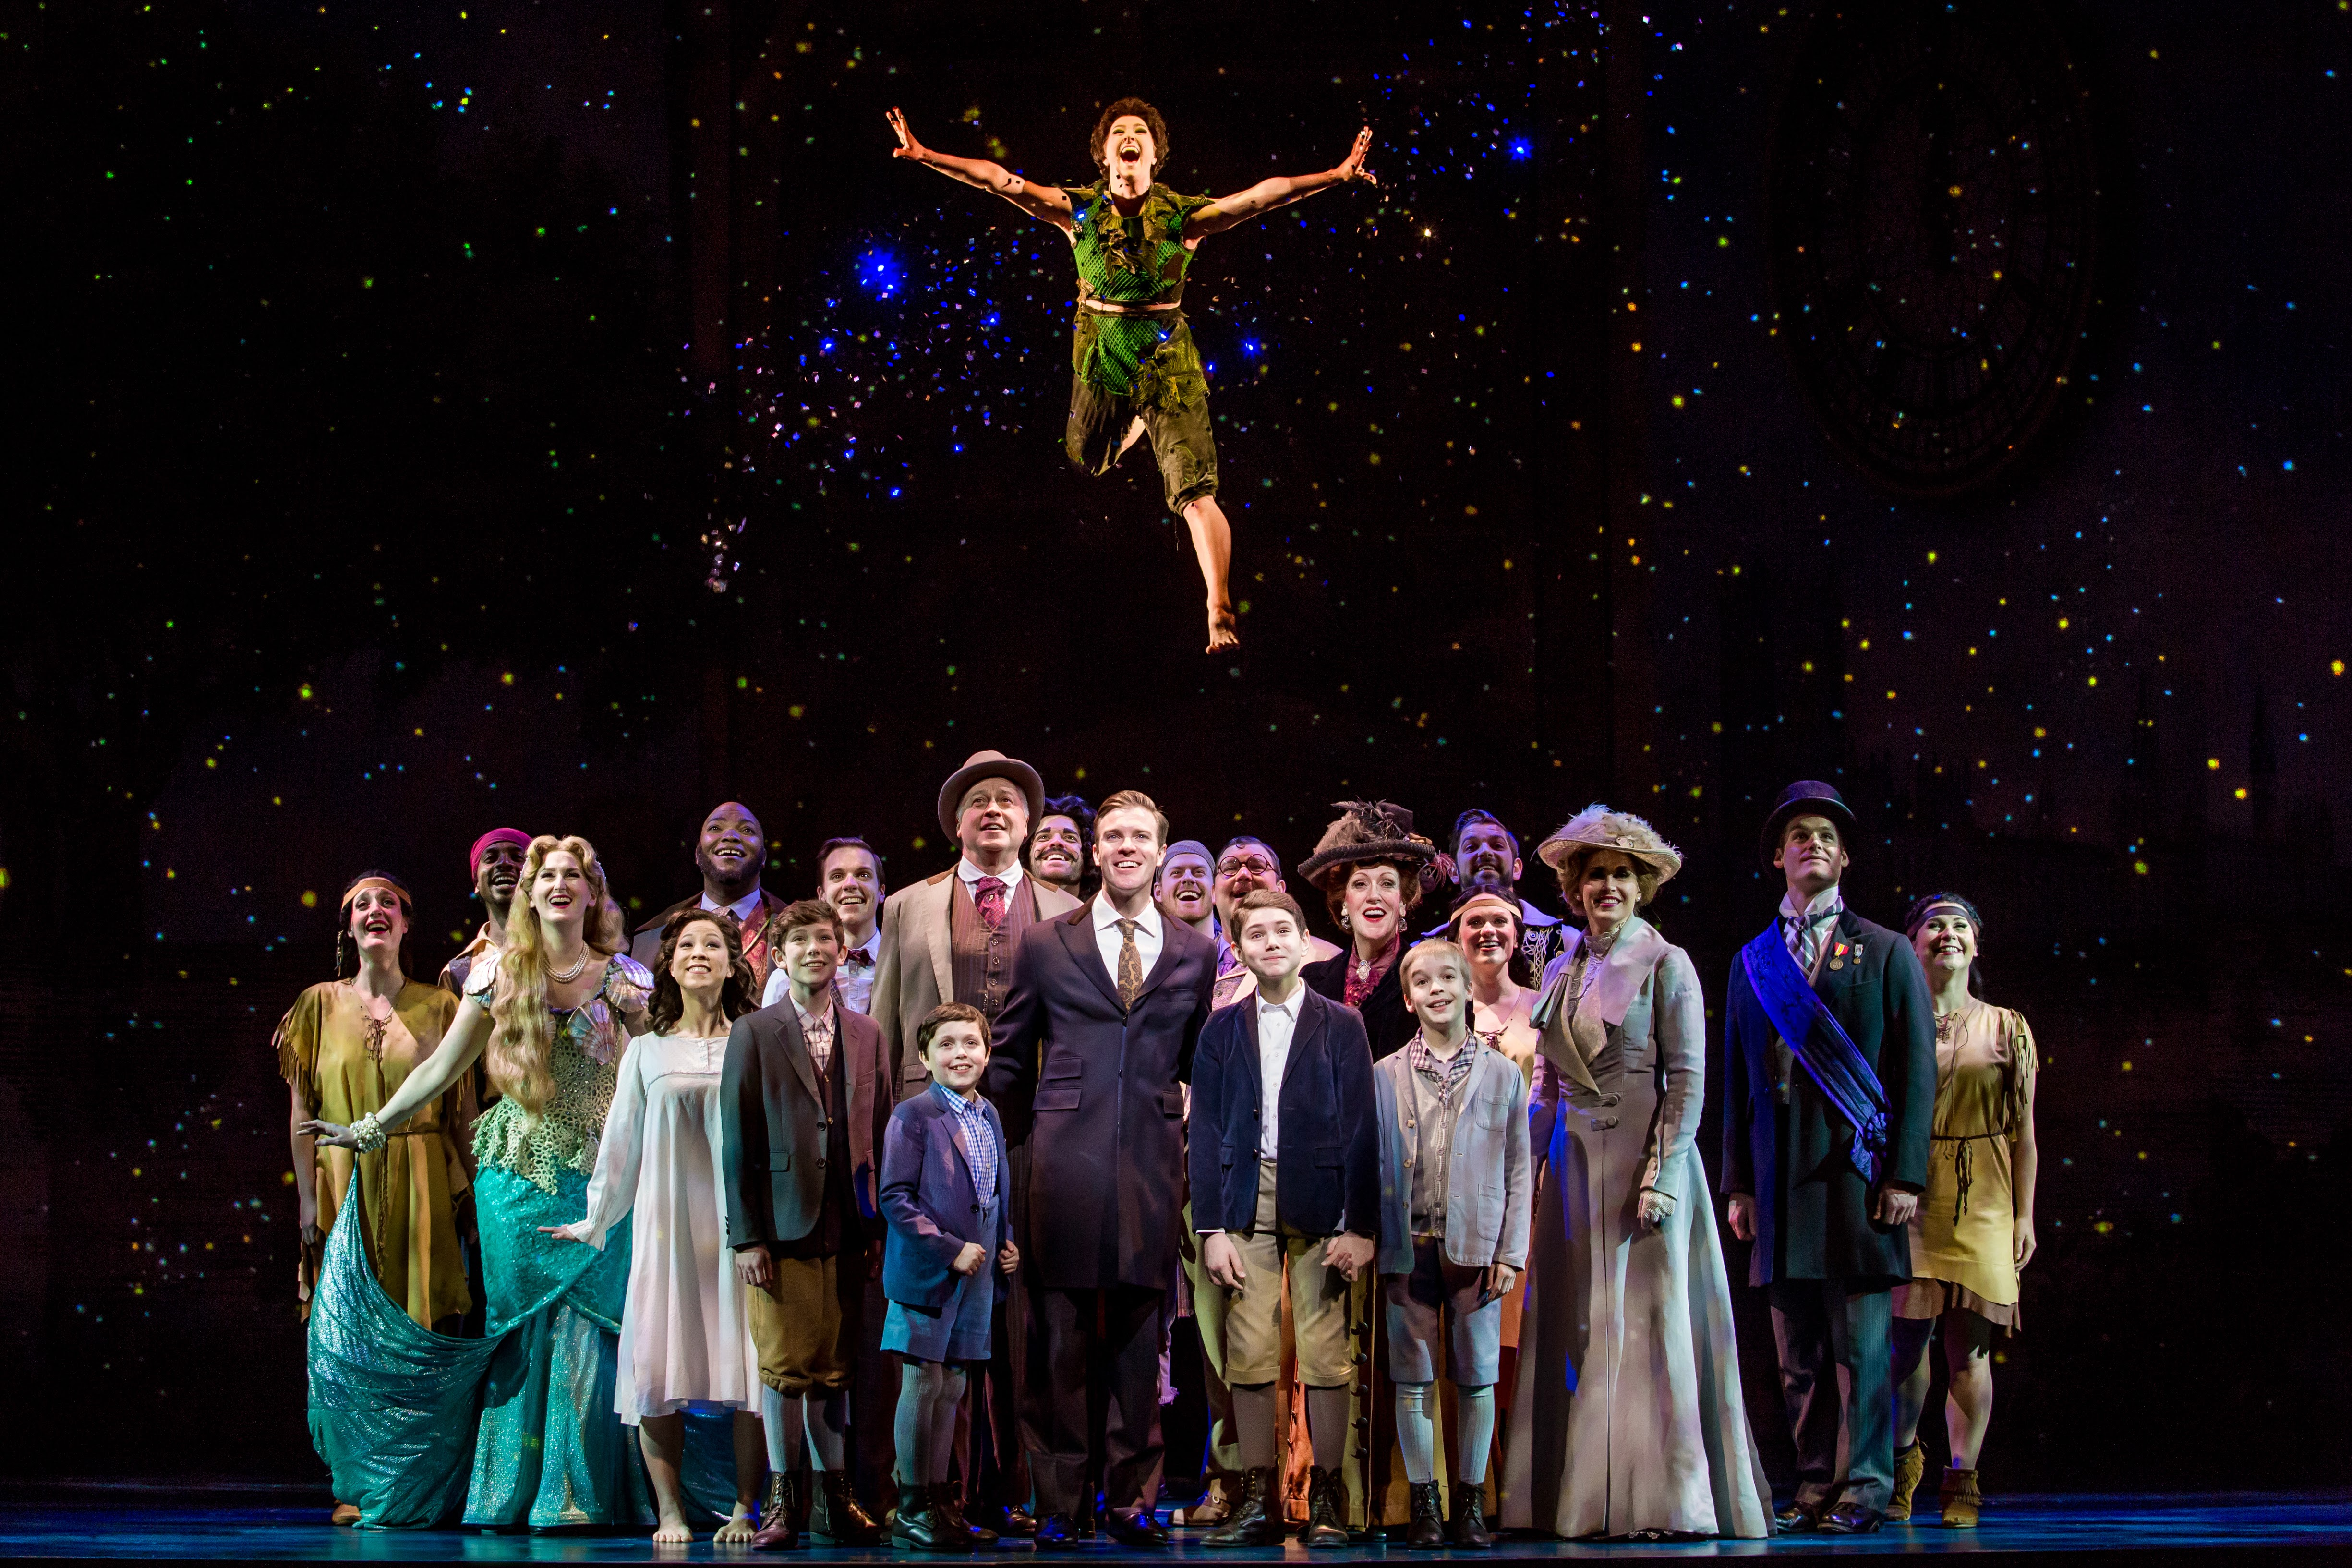 The cast of Finding Neverland! It's at the Fox Theatre in Atlanta through May 21st!